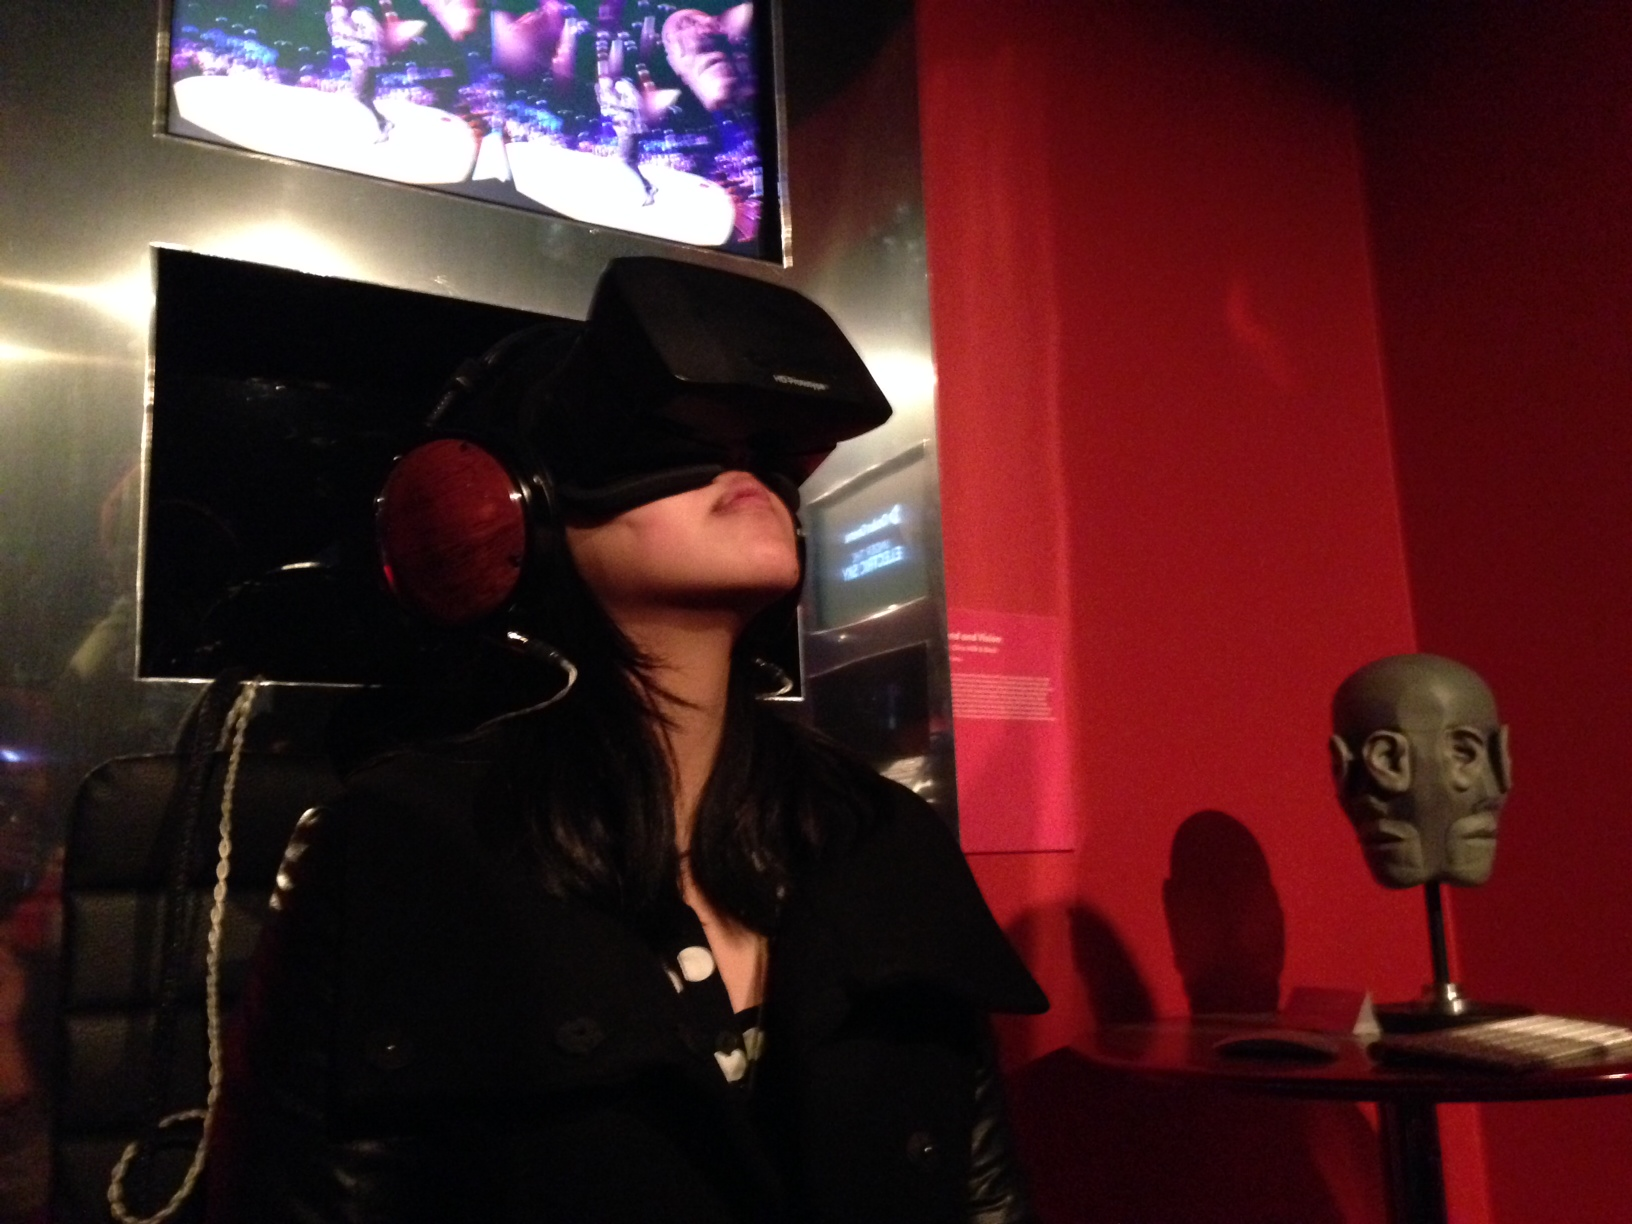 SciFri's Chau Tu testing out the Oculus Rift at the Sundance Film Festival. Photo by Joe Chen